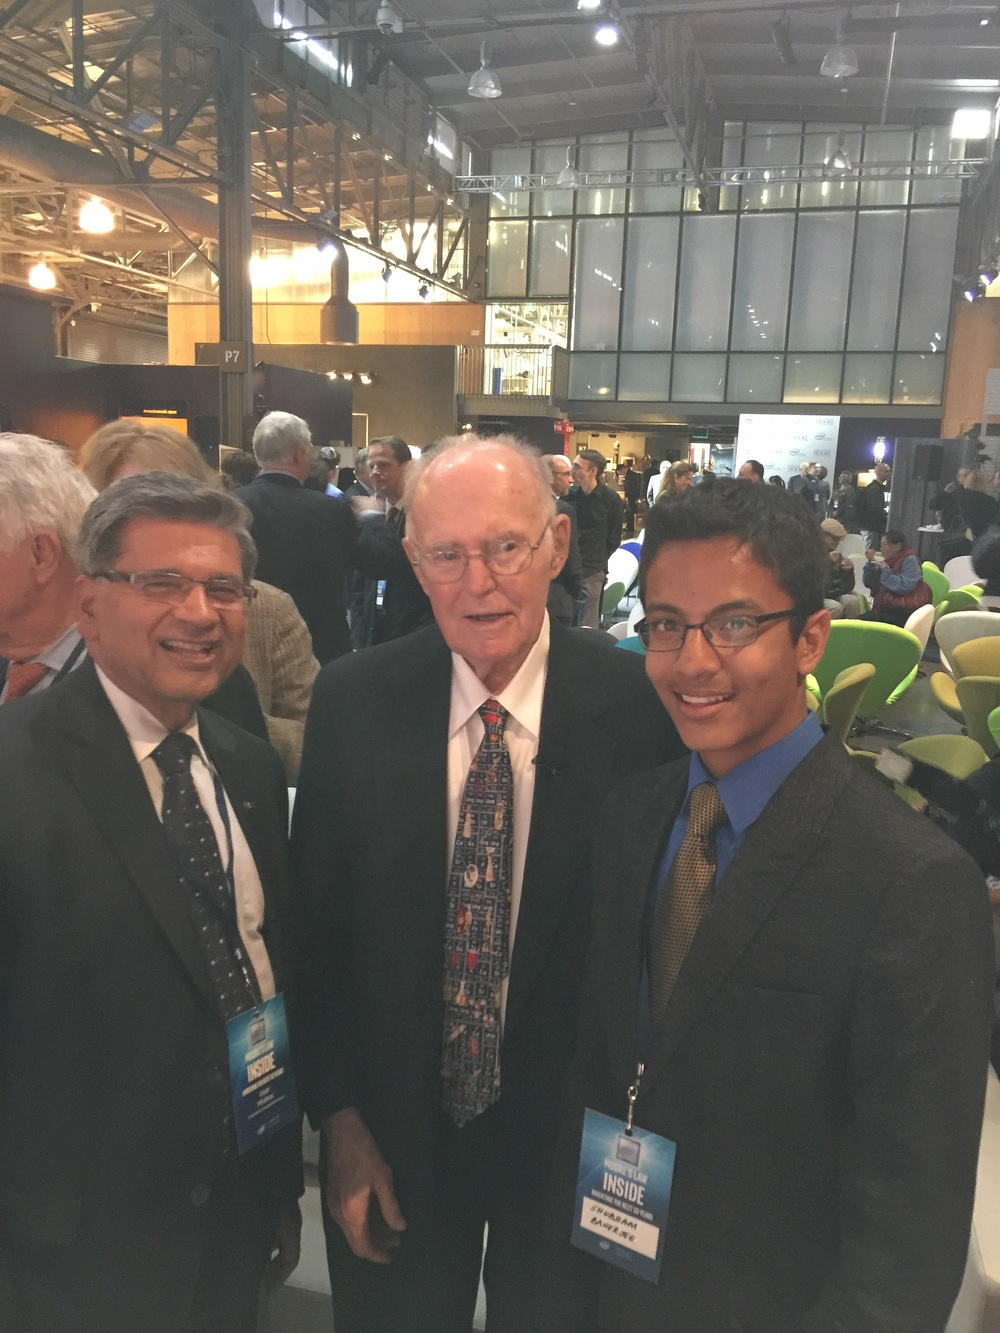 Shubham Banerjee with Gordon Moore - May 11, 2015